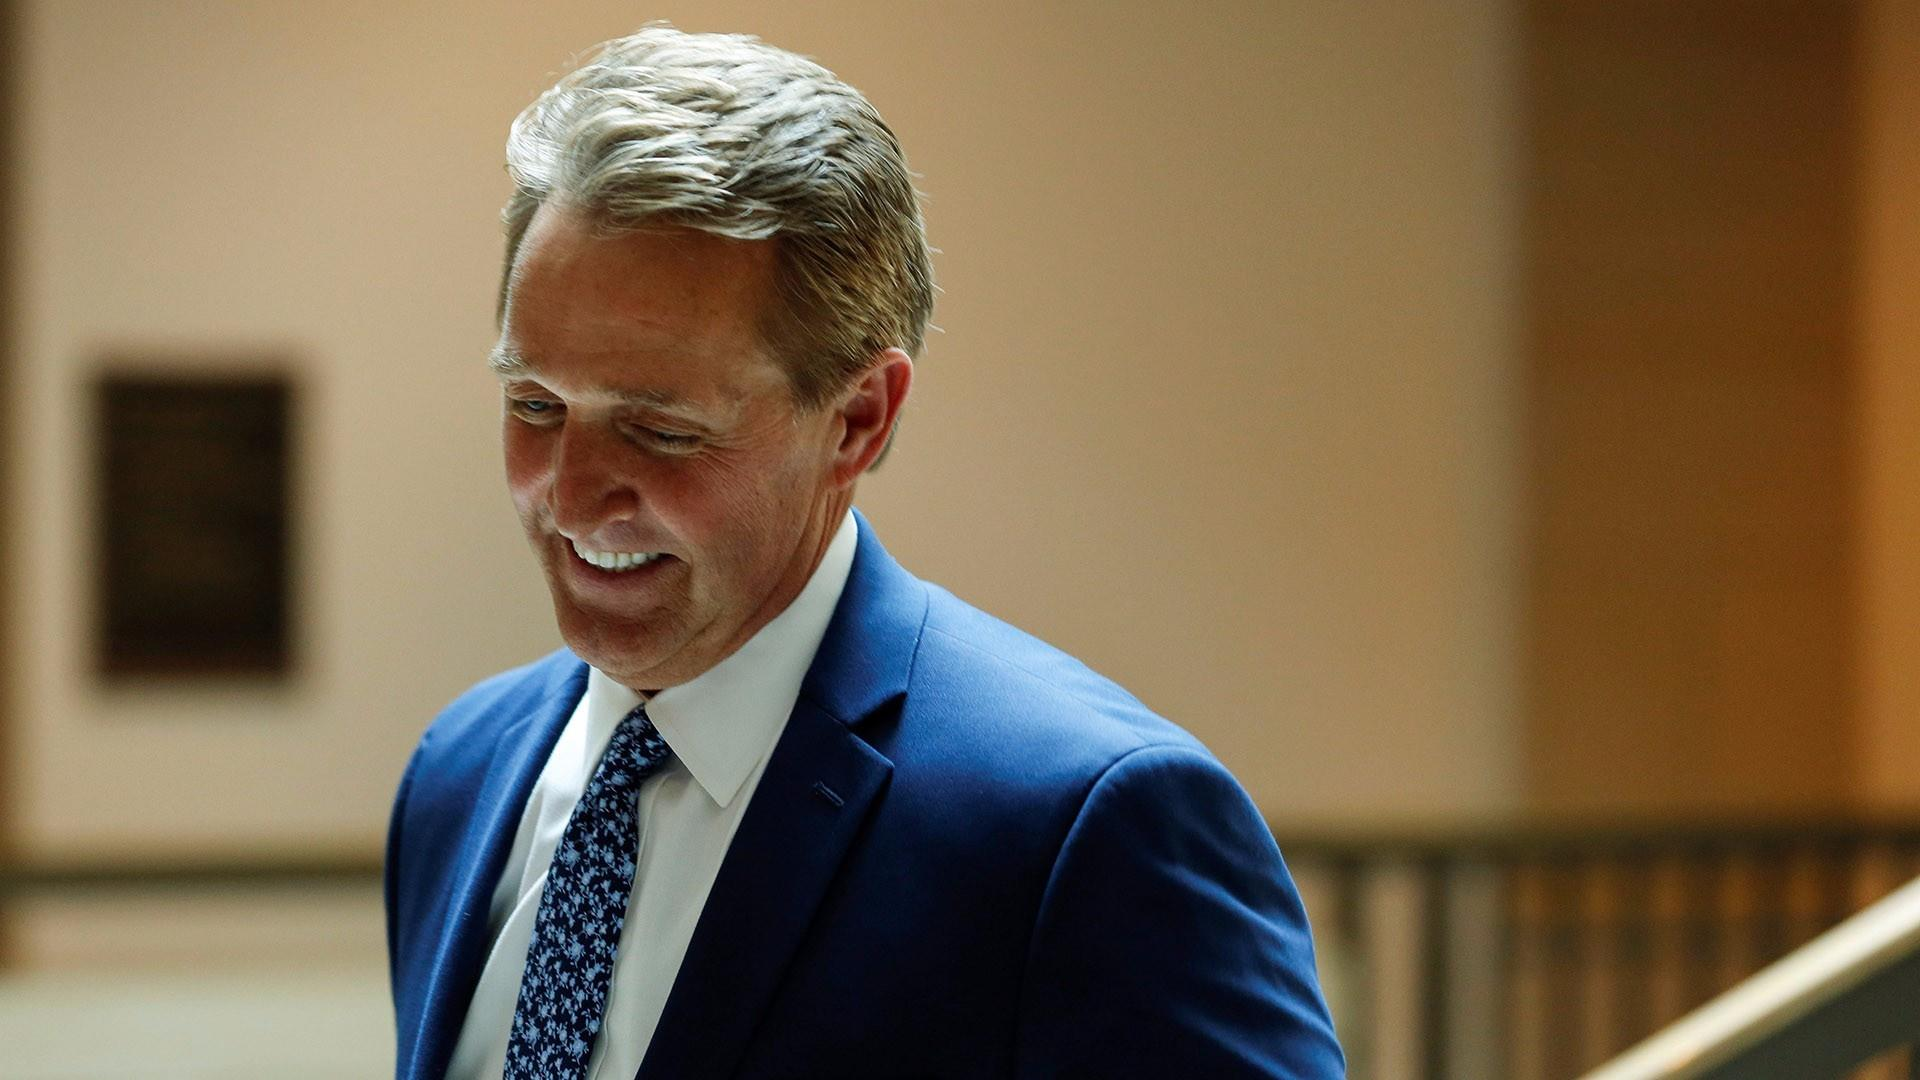 Sen. Flake: John McCain 'saw humanity in everybody'